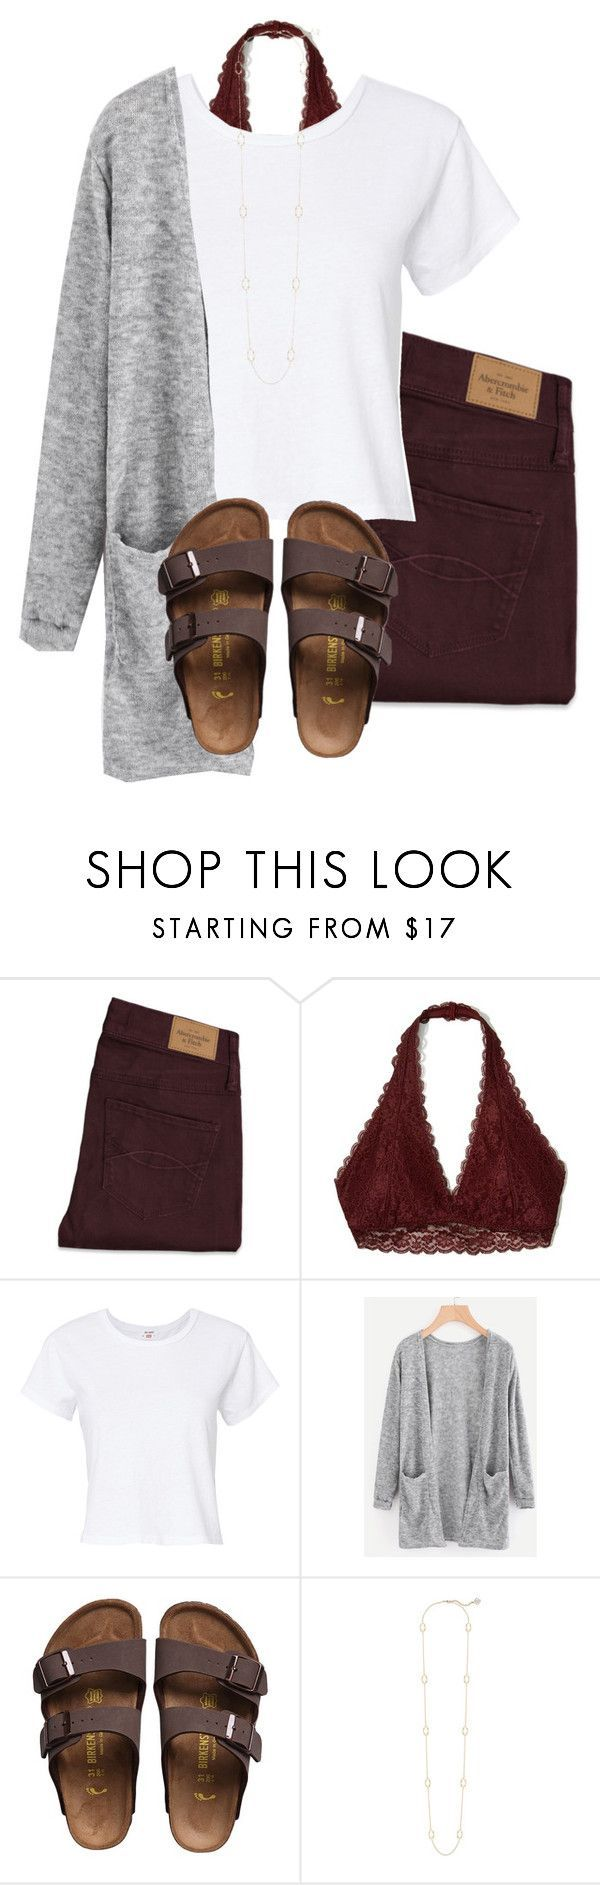 """""""Untitled #26"""" by katielroberts on Polyvore featuring Abercrombie & Fitch, Hollister Co., RE/DONE, Birkenstock and Kendra Scott"""